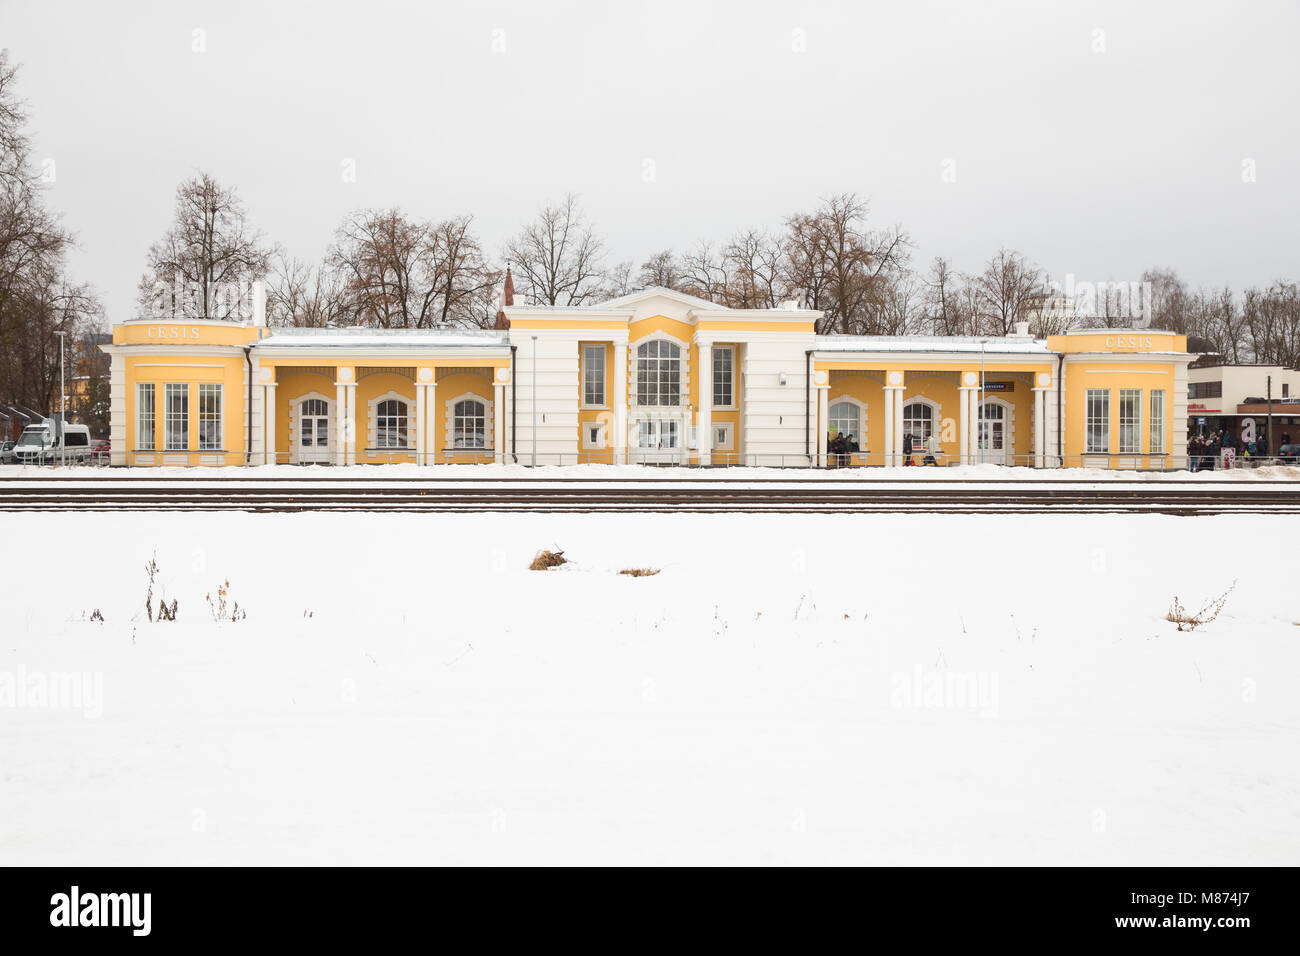 City Cesis, Latvia Railway station, building, peoples and snow. Winter 2018 Travel photo. - Stock Image